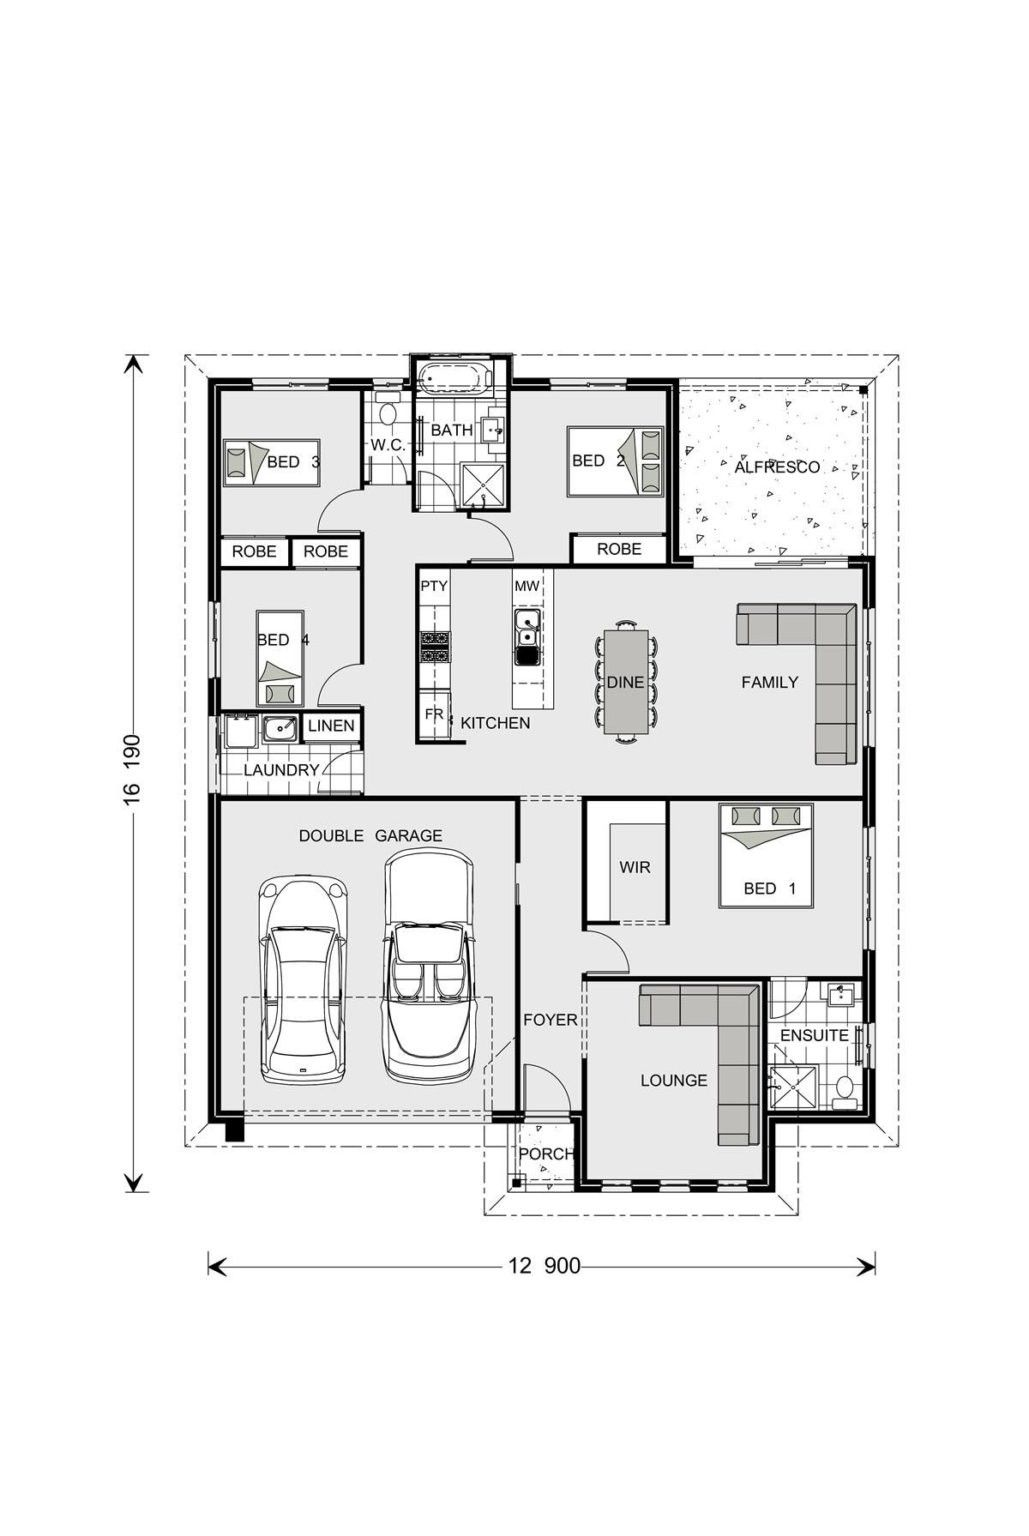 Amazing Different Types Of House Plan Design Ideas To See More Read It In 2021 House Plans Different Types Of Houses Plan Design